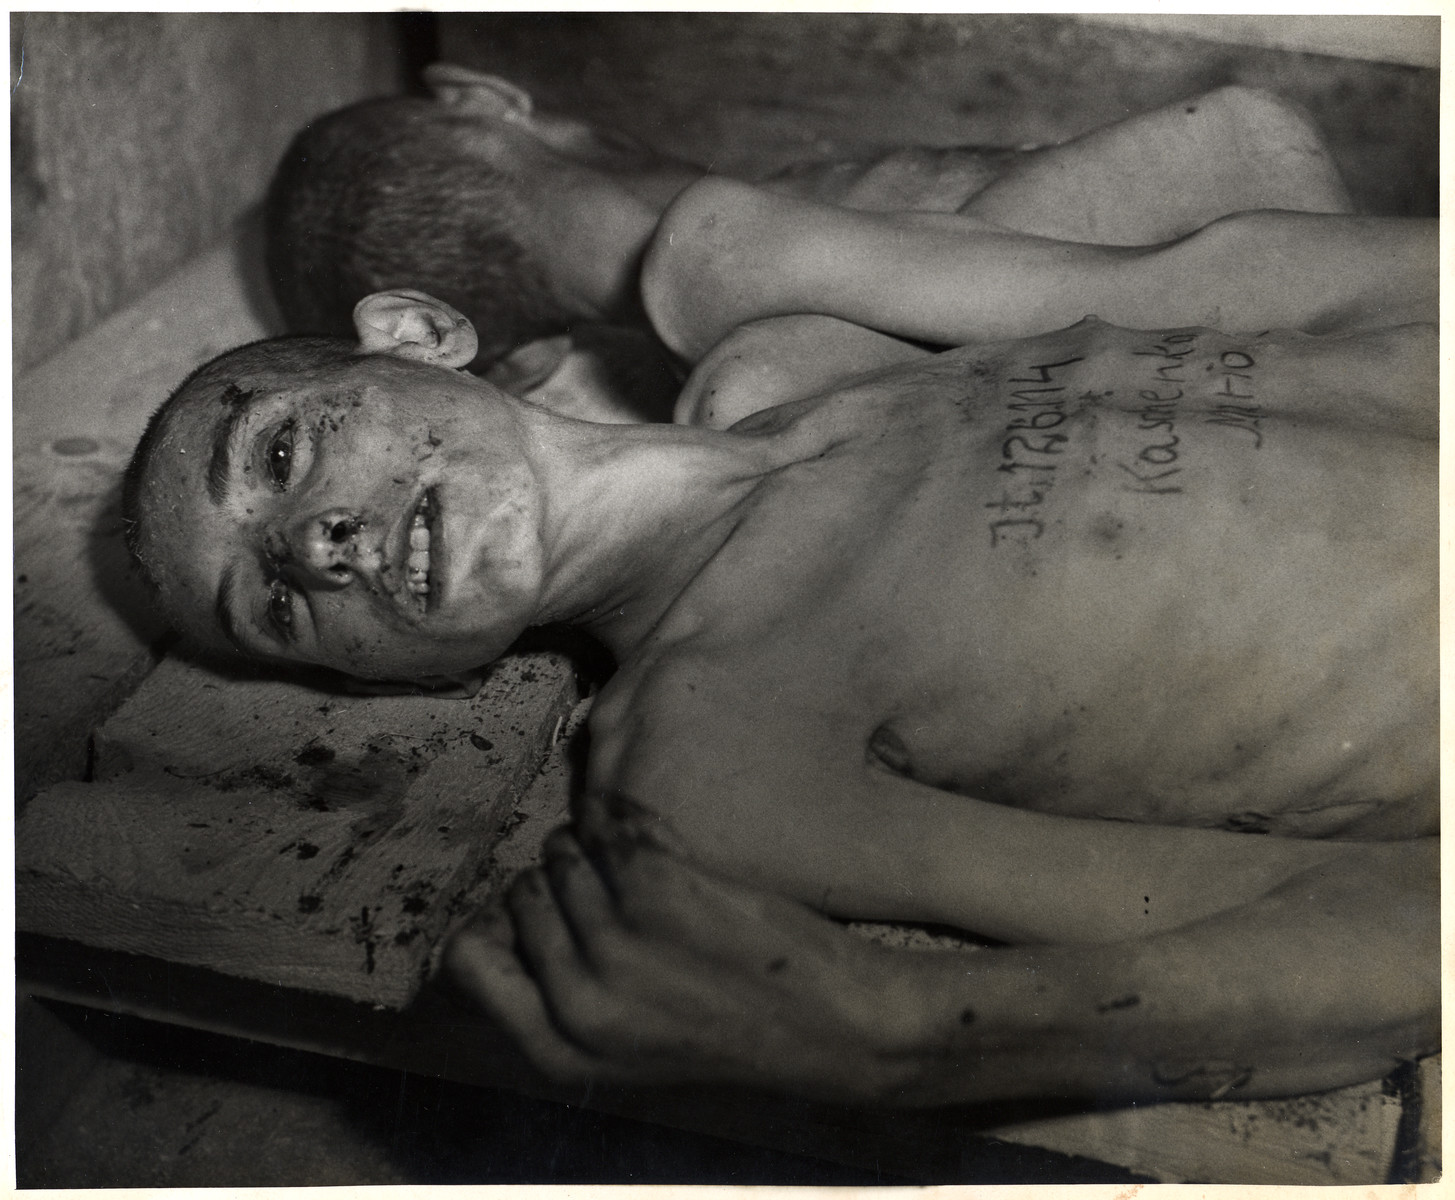 Close-up portrait of a bloodied, emaciated man in an unidentified concentration camp with his name and number written on his chest.